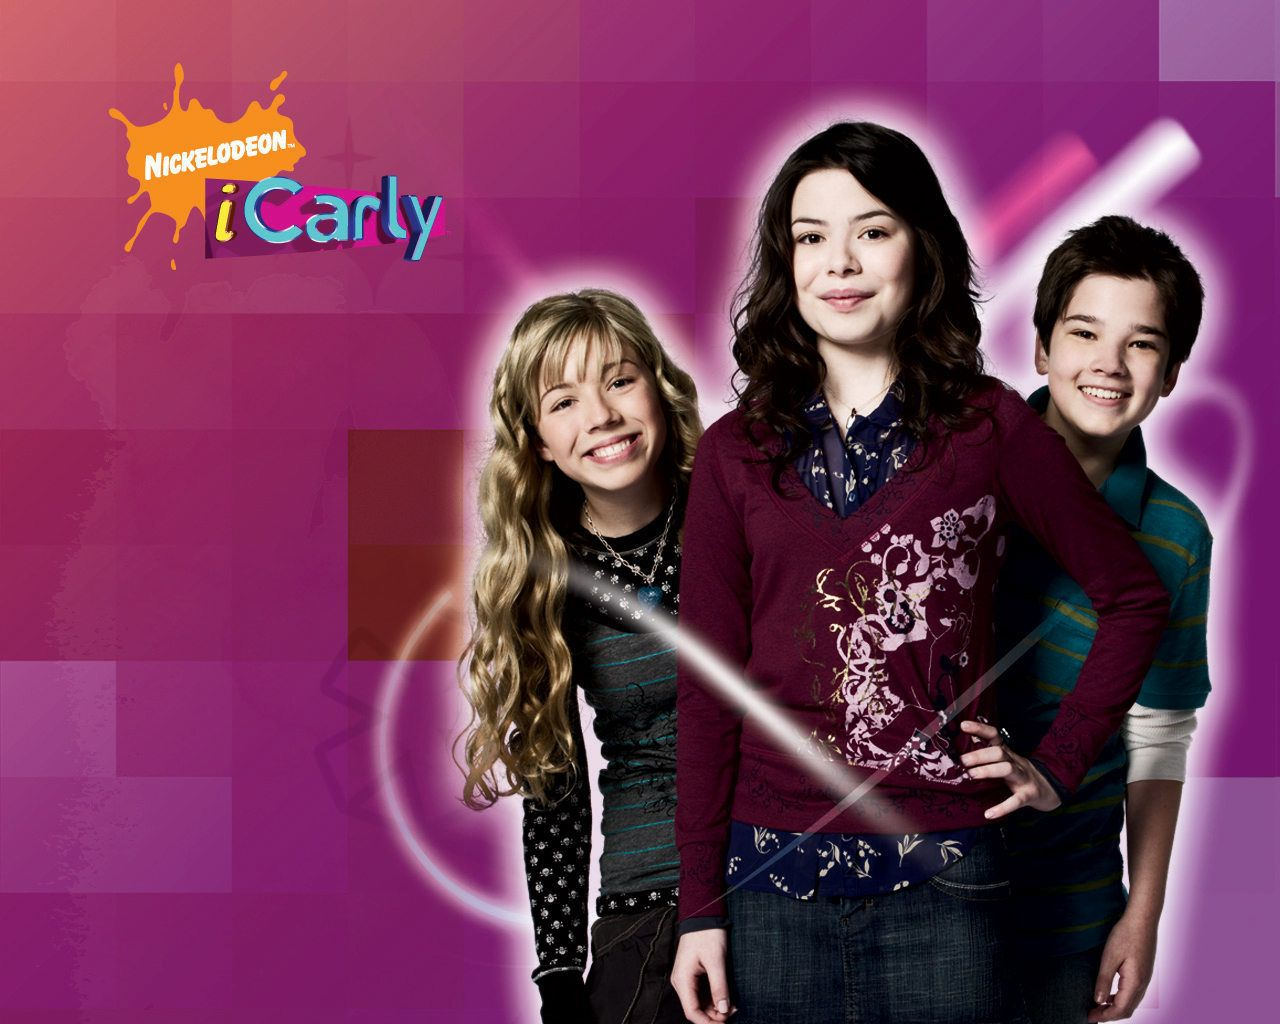 1280x1024 iCarly Wallpapers - iCarly Wallpaper (5379807) - Fanpop